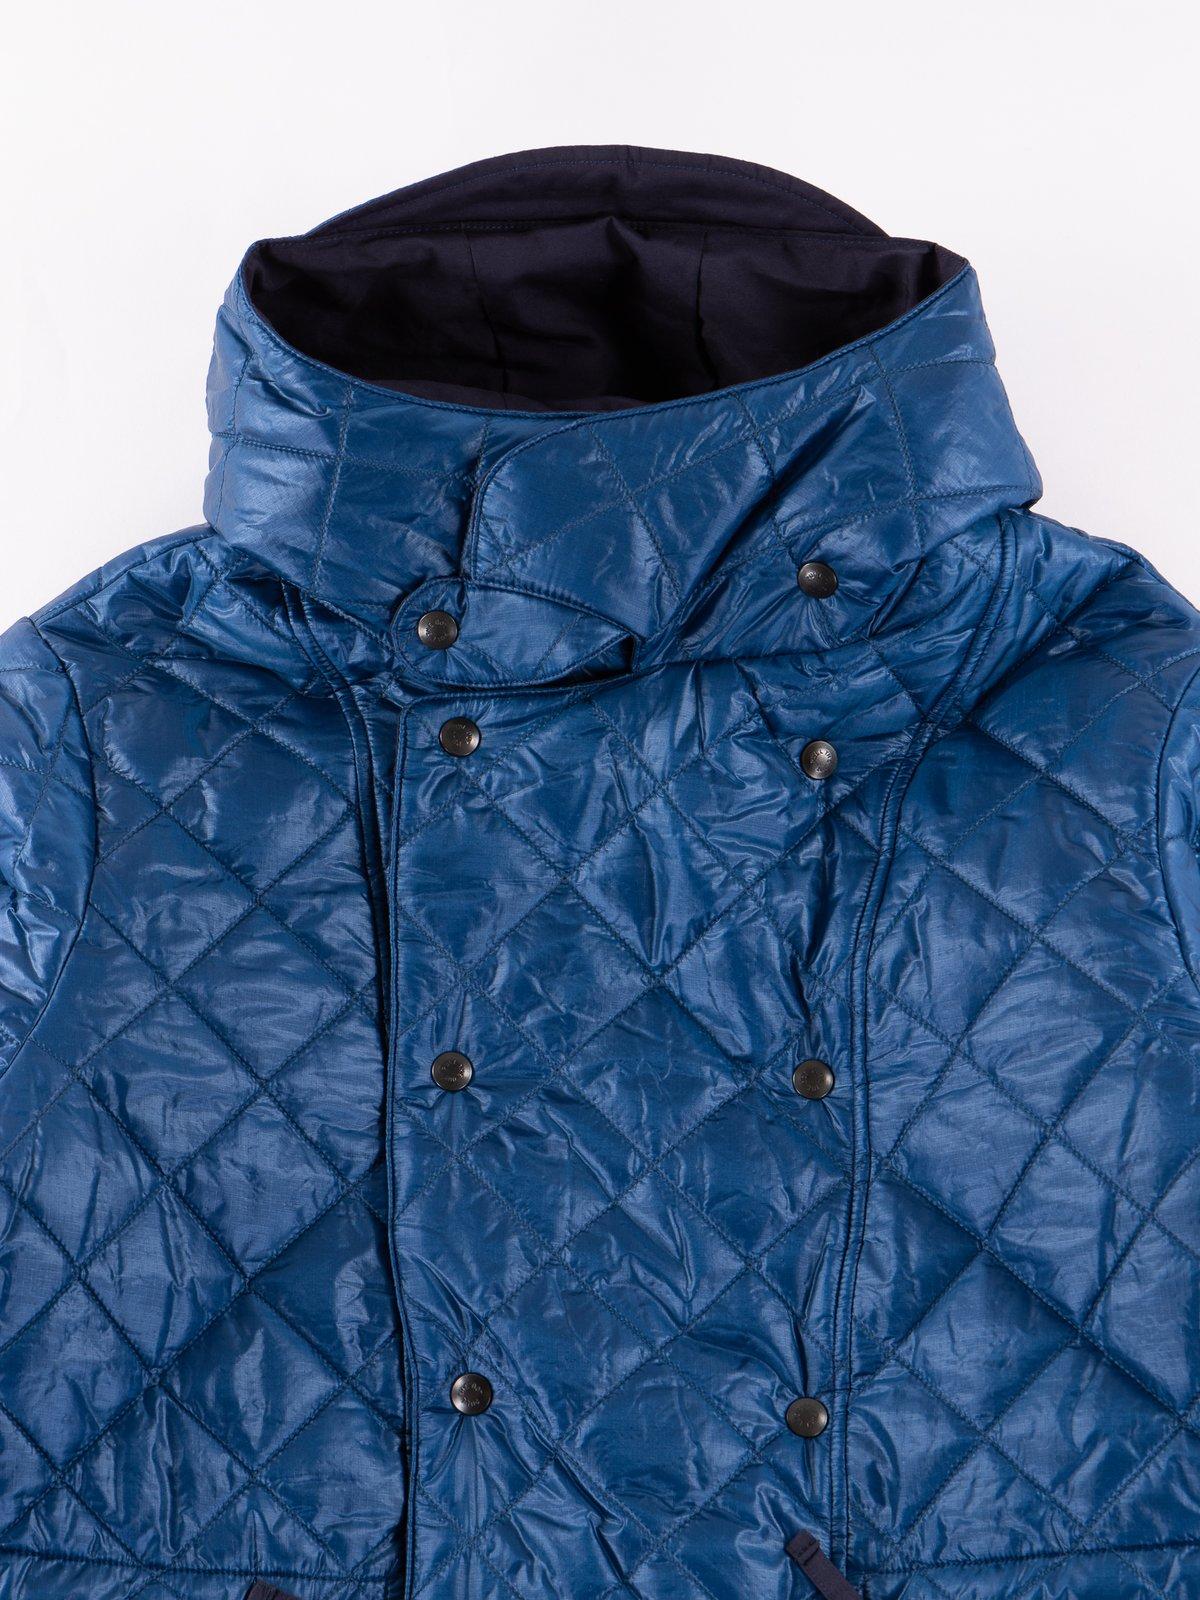 Navy 3oz Zigzag Dotera Fill Hooded Quilted Jacket - Image 3